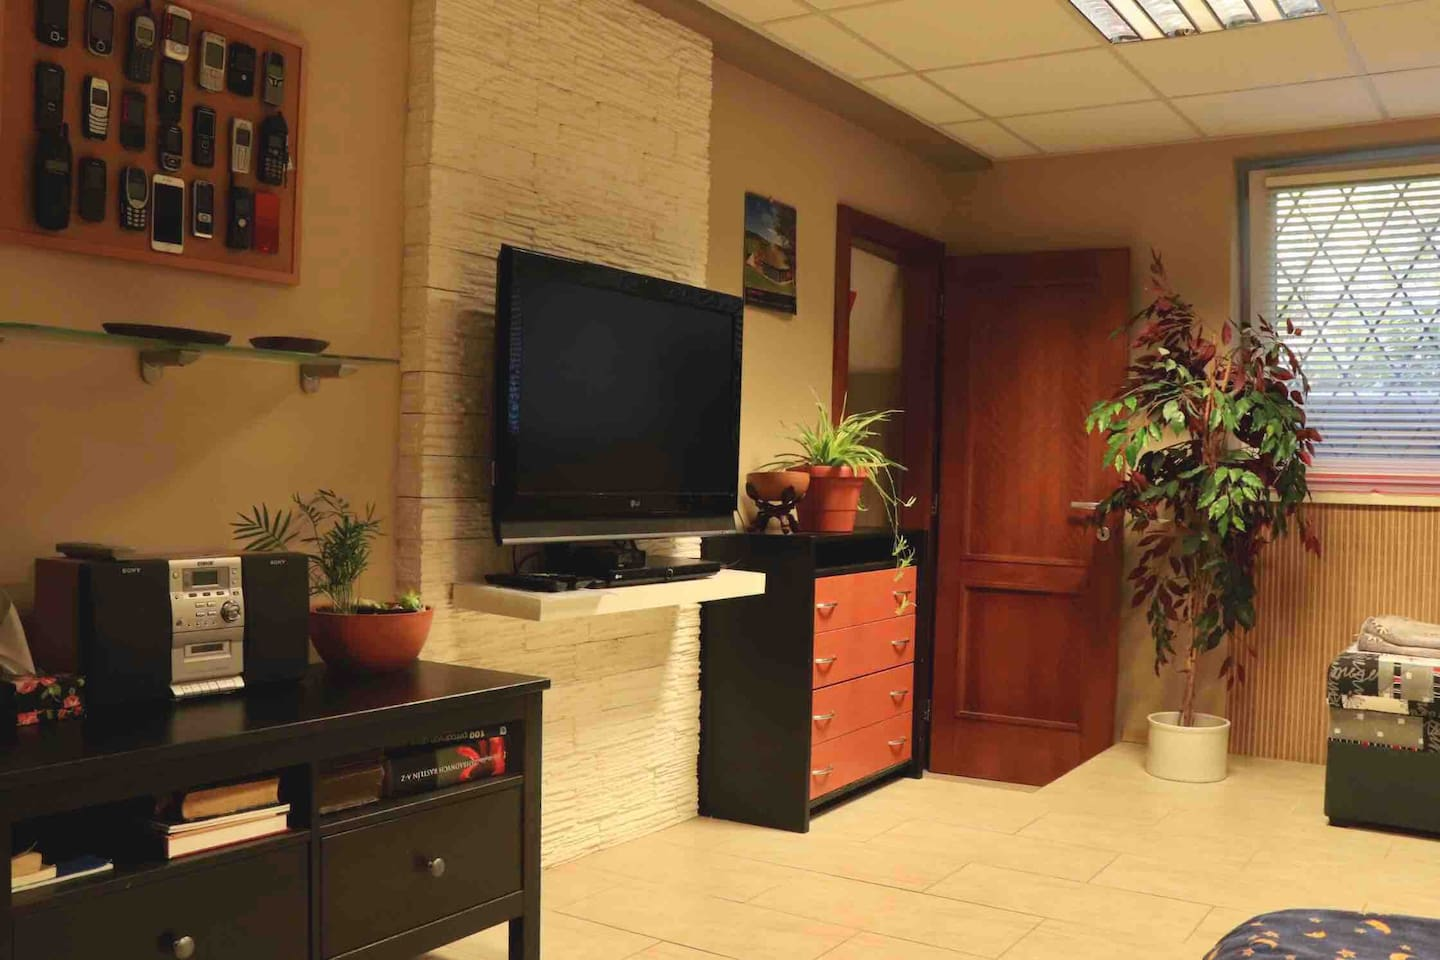 Bedroom with double and single bed, so 3 people fit easily.  TV with international channels, DVD, radio, wardrobe, hanger, small table with arm chair is in the room.